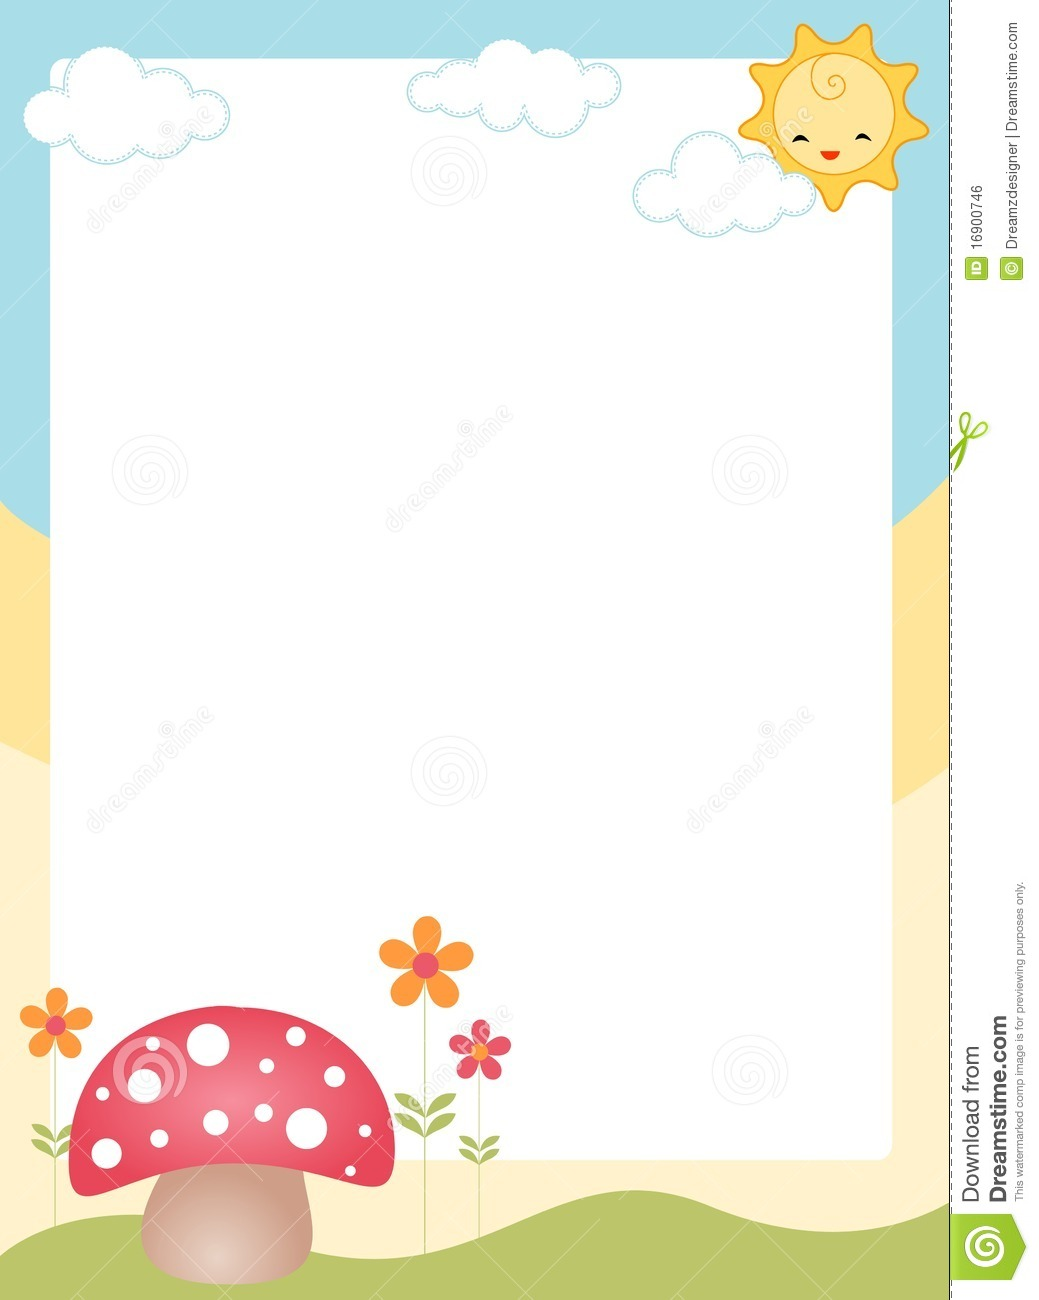 Cute Spring Border Frame Stock Vector Illustration Of